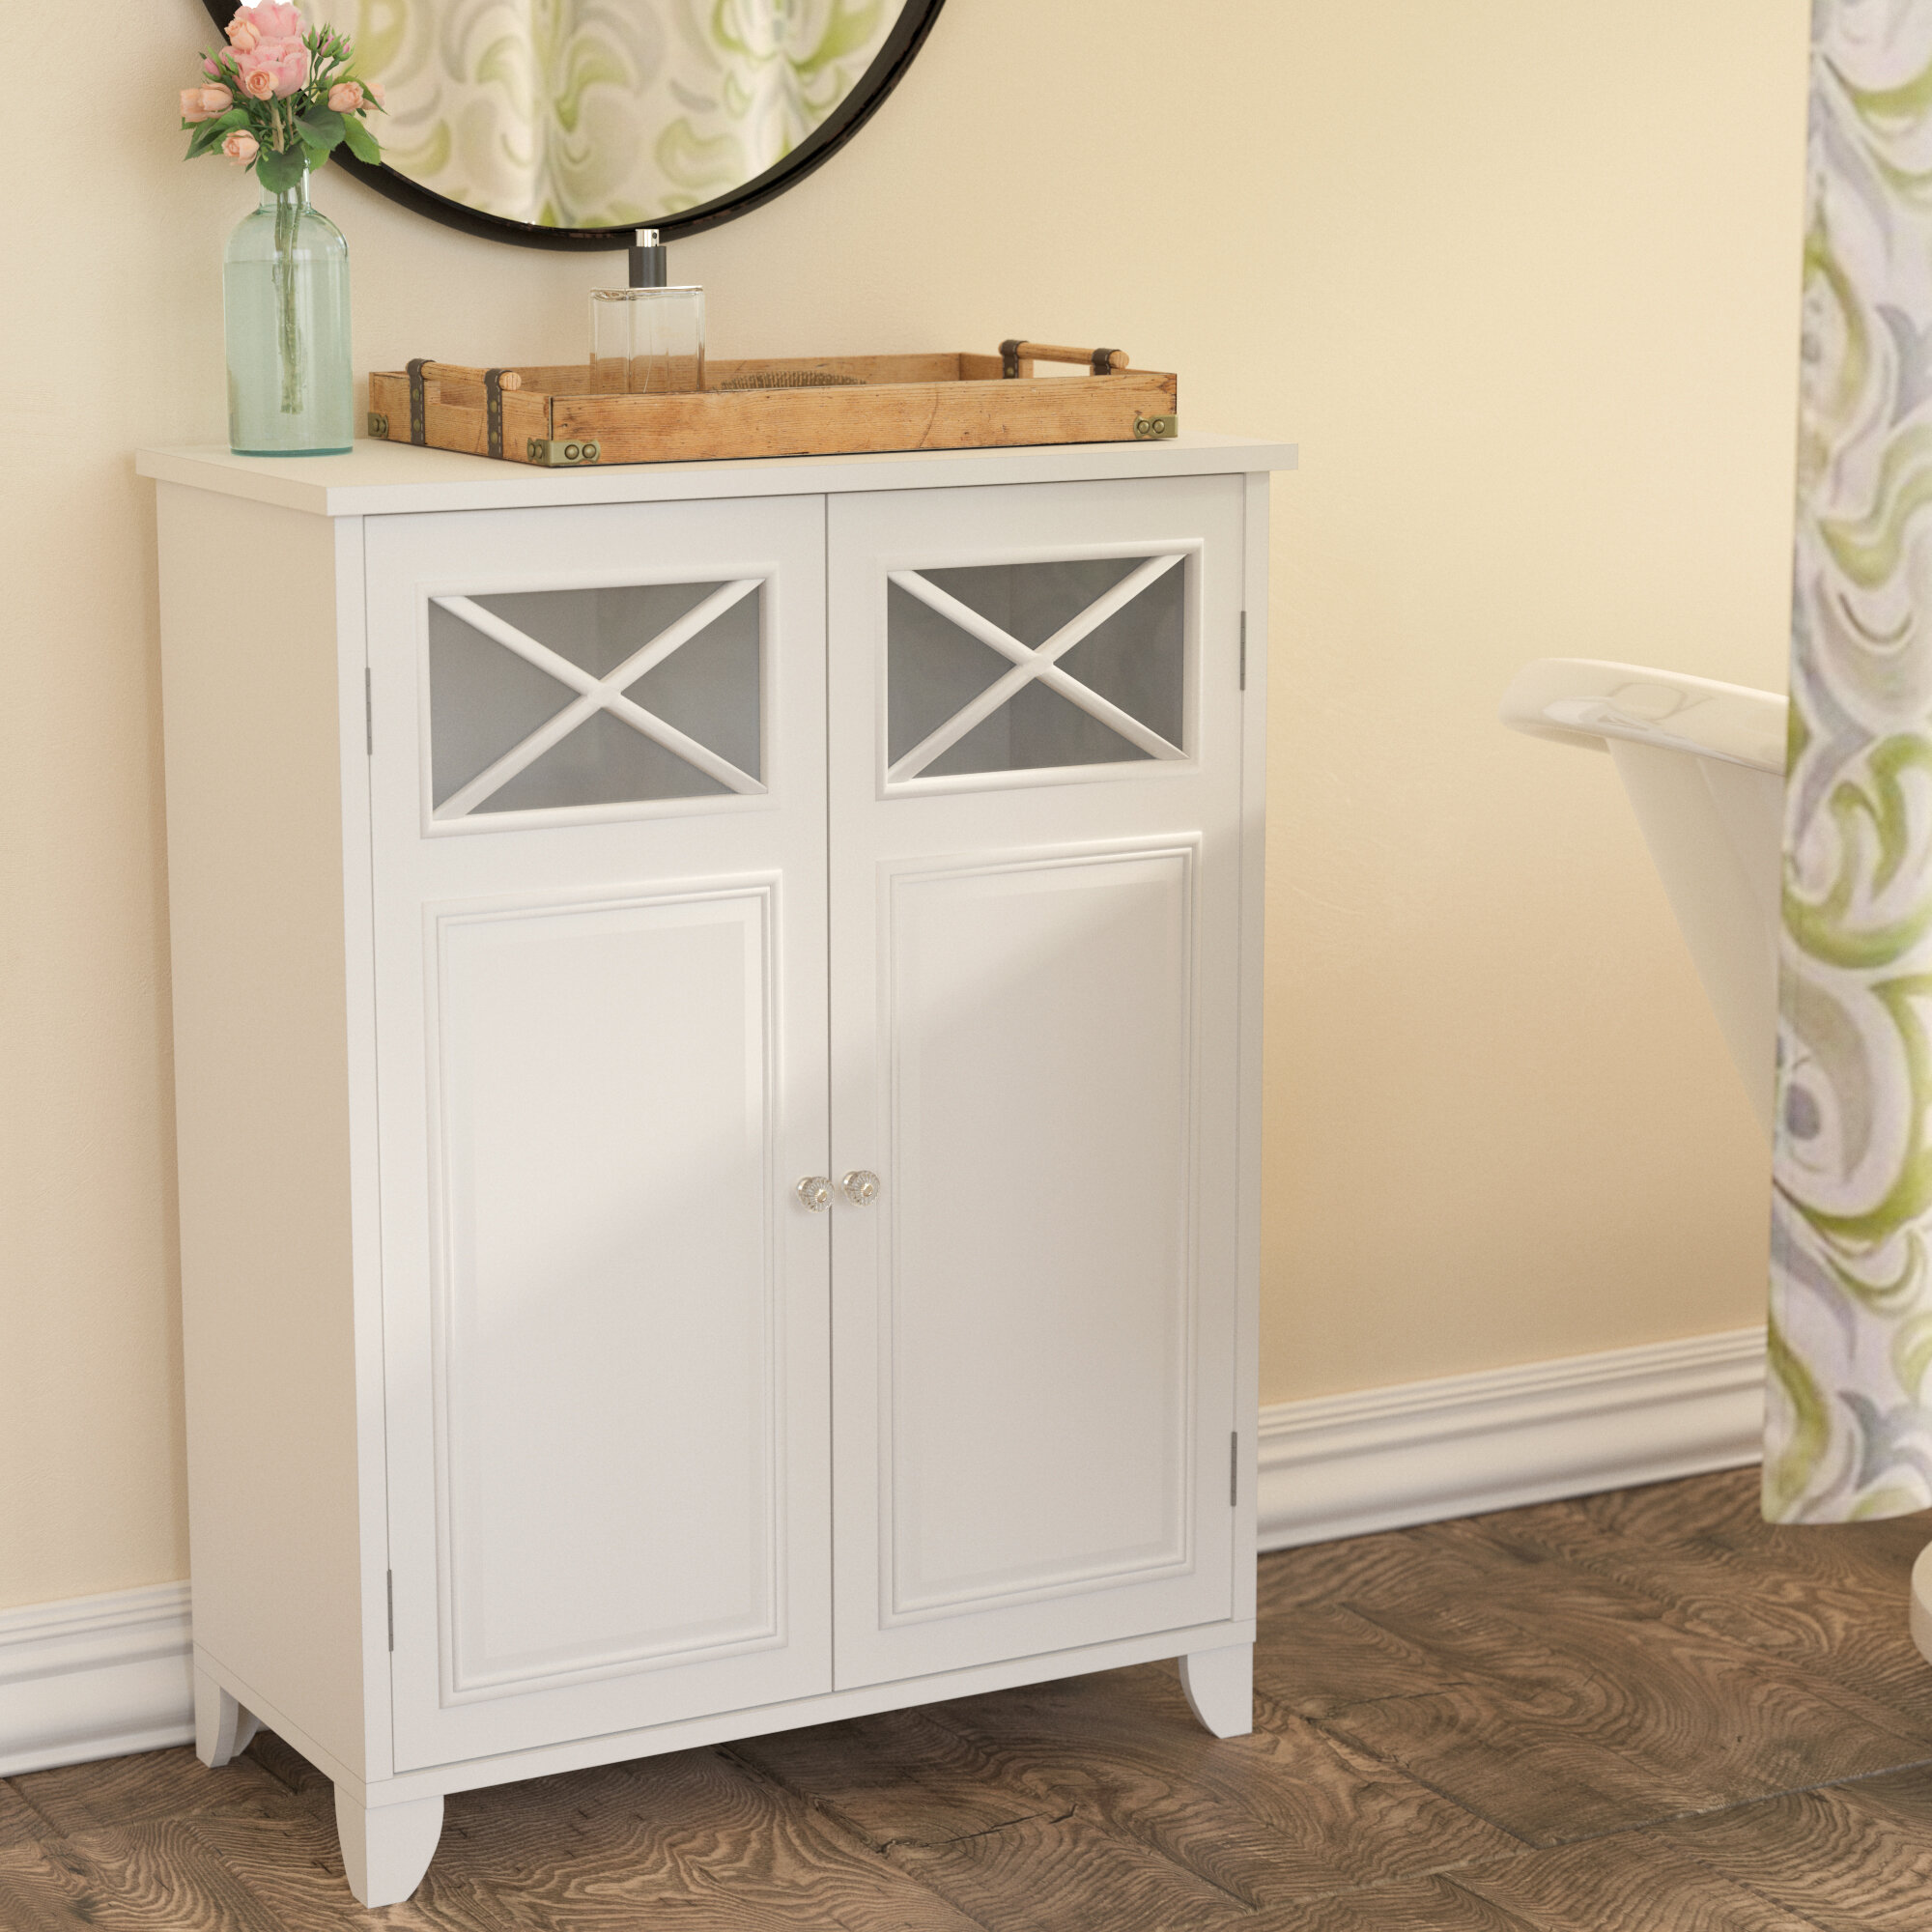 Rosecliff Heights Roberts 26 W X 34 H X 13 D Free Standing Bathroom Cabinet Reviews Wayfair